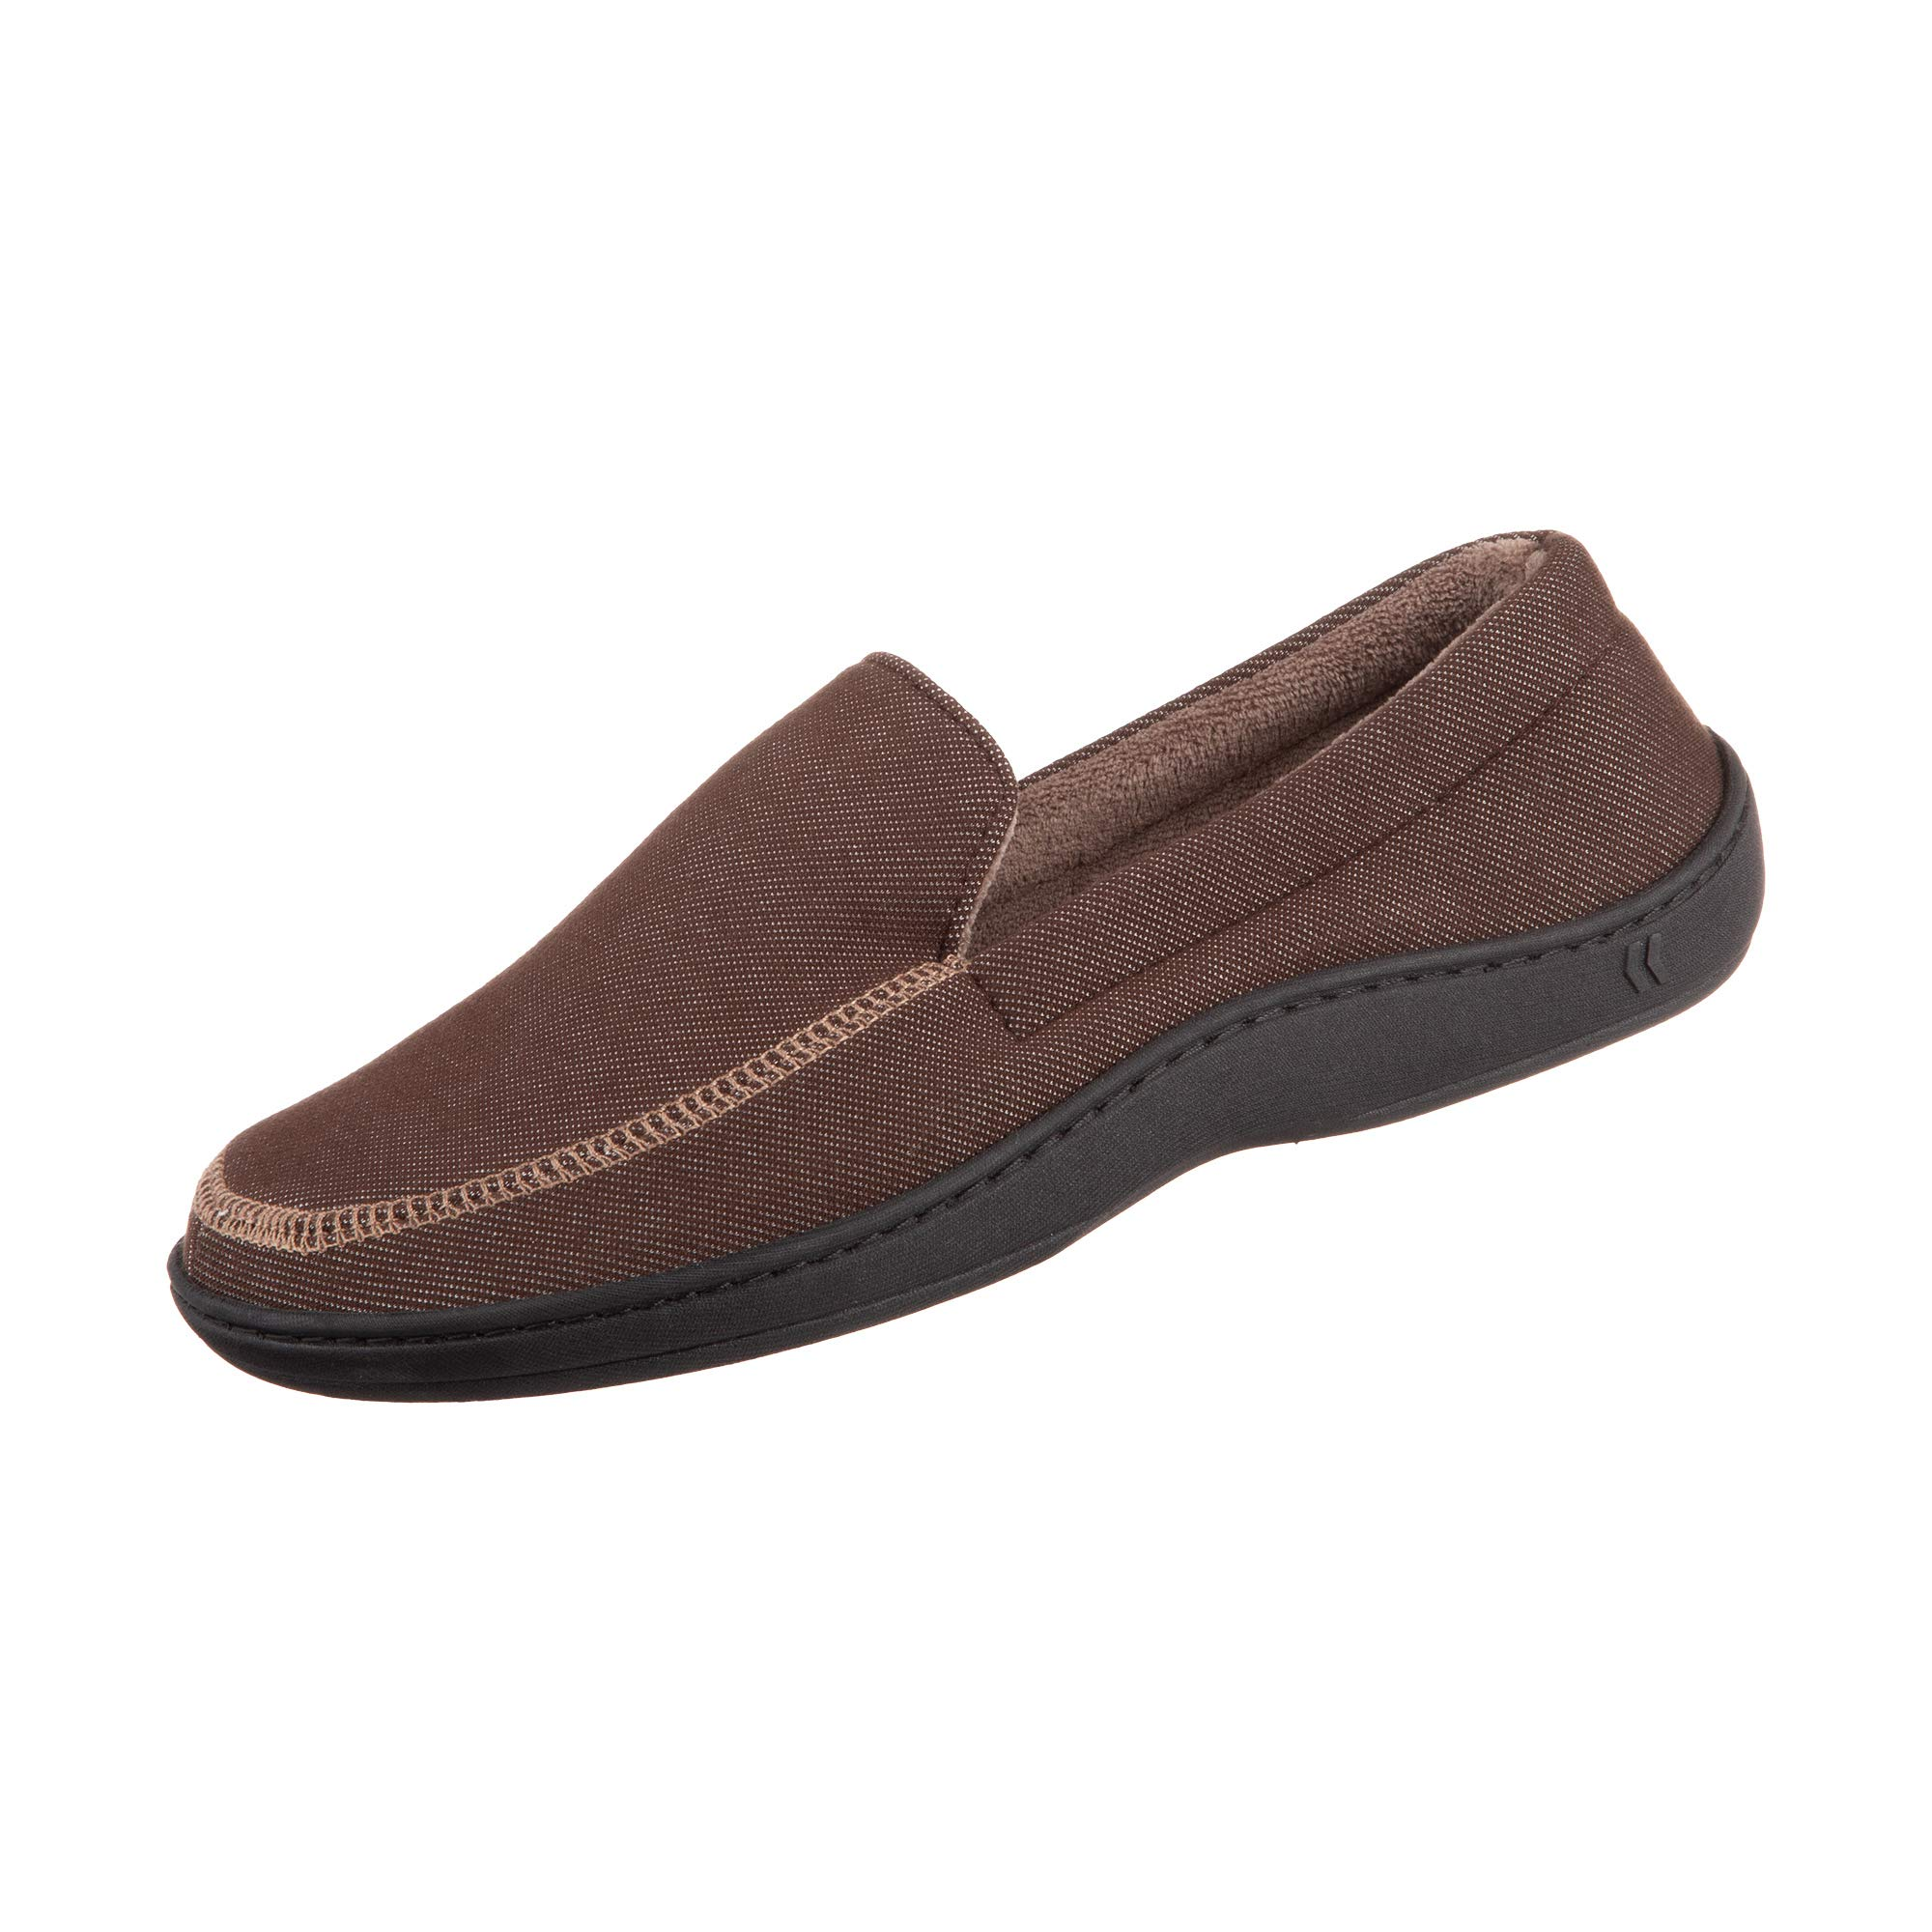 302a5e8923886 Isotoner Chandler Men's Moccasin Slippers, Memory Foam, Indoor/Outdoor  Sole, Dark Chocolate, MD